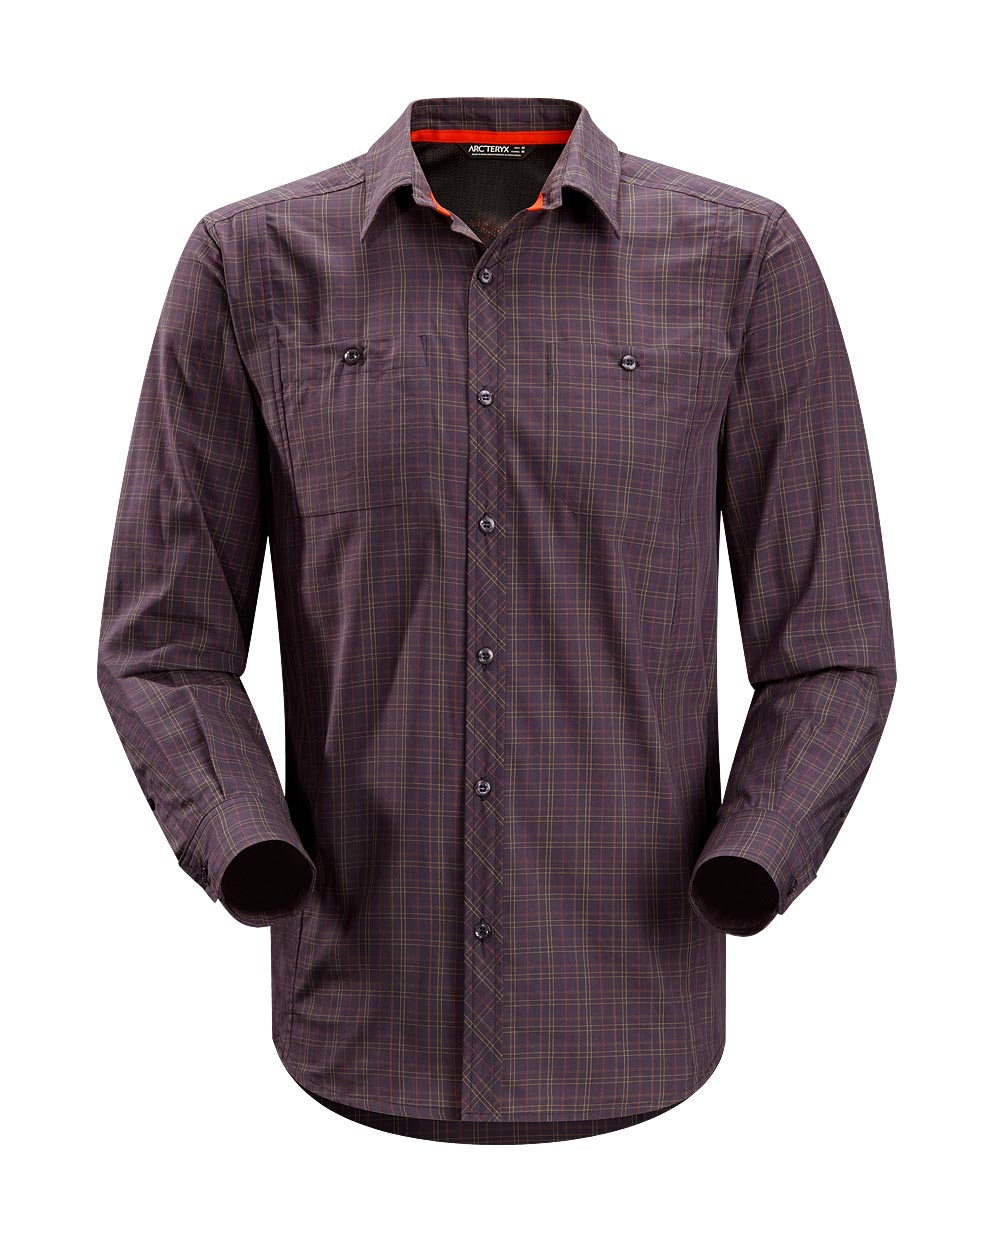 Arcteryx Taro Borderline Shirt LS - New